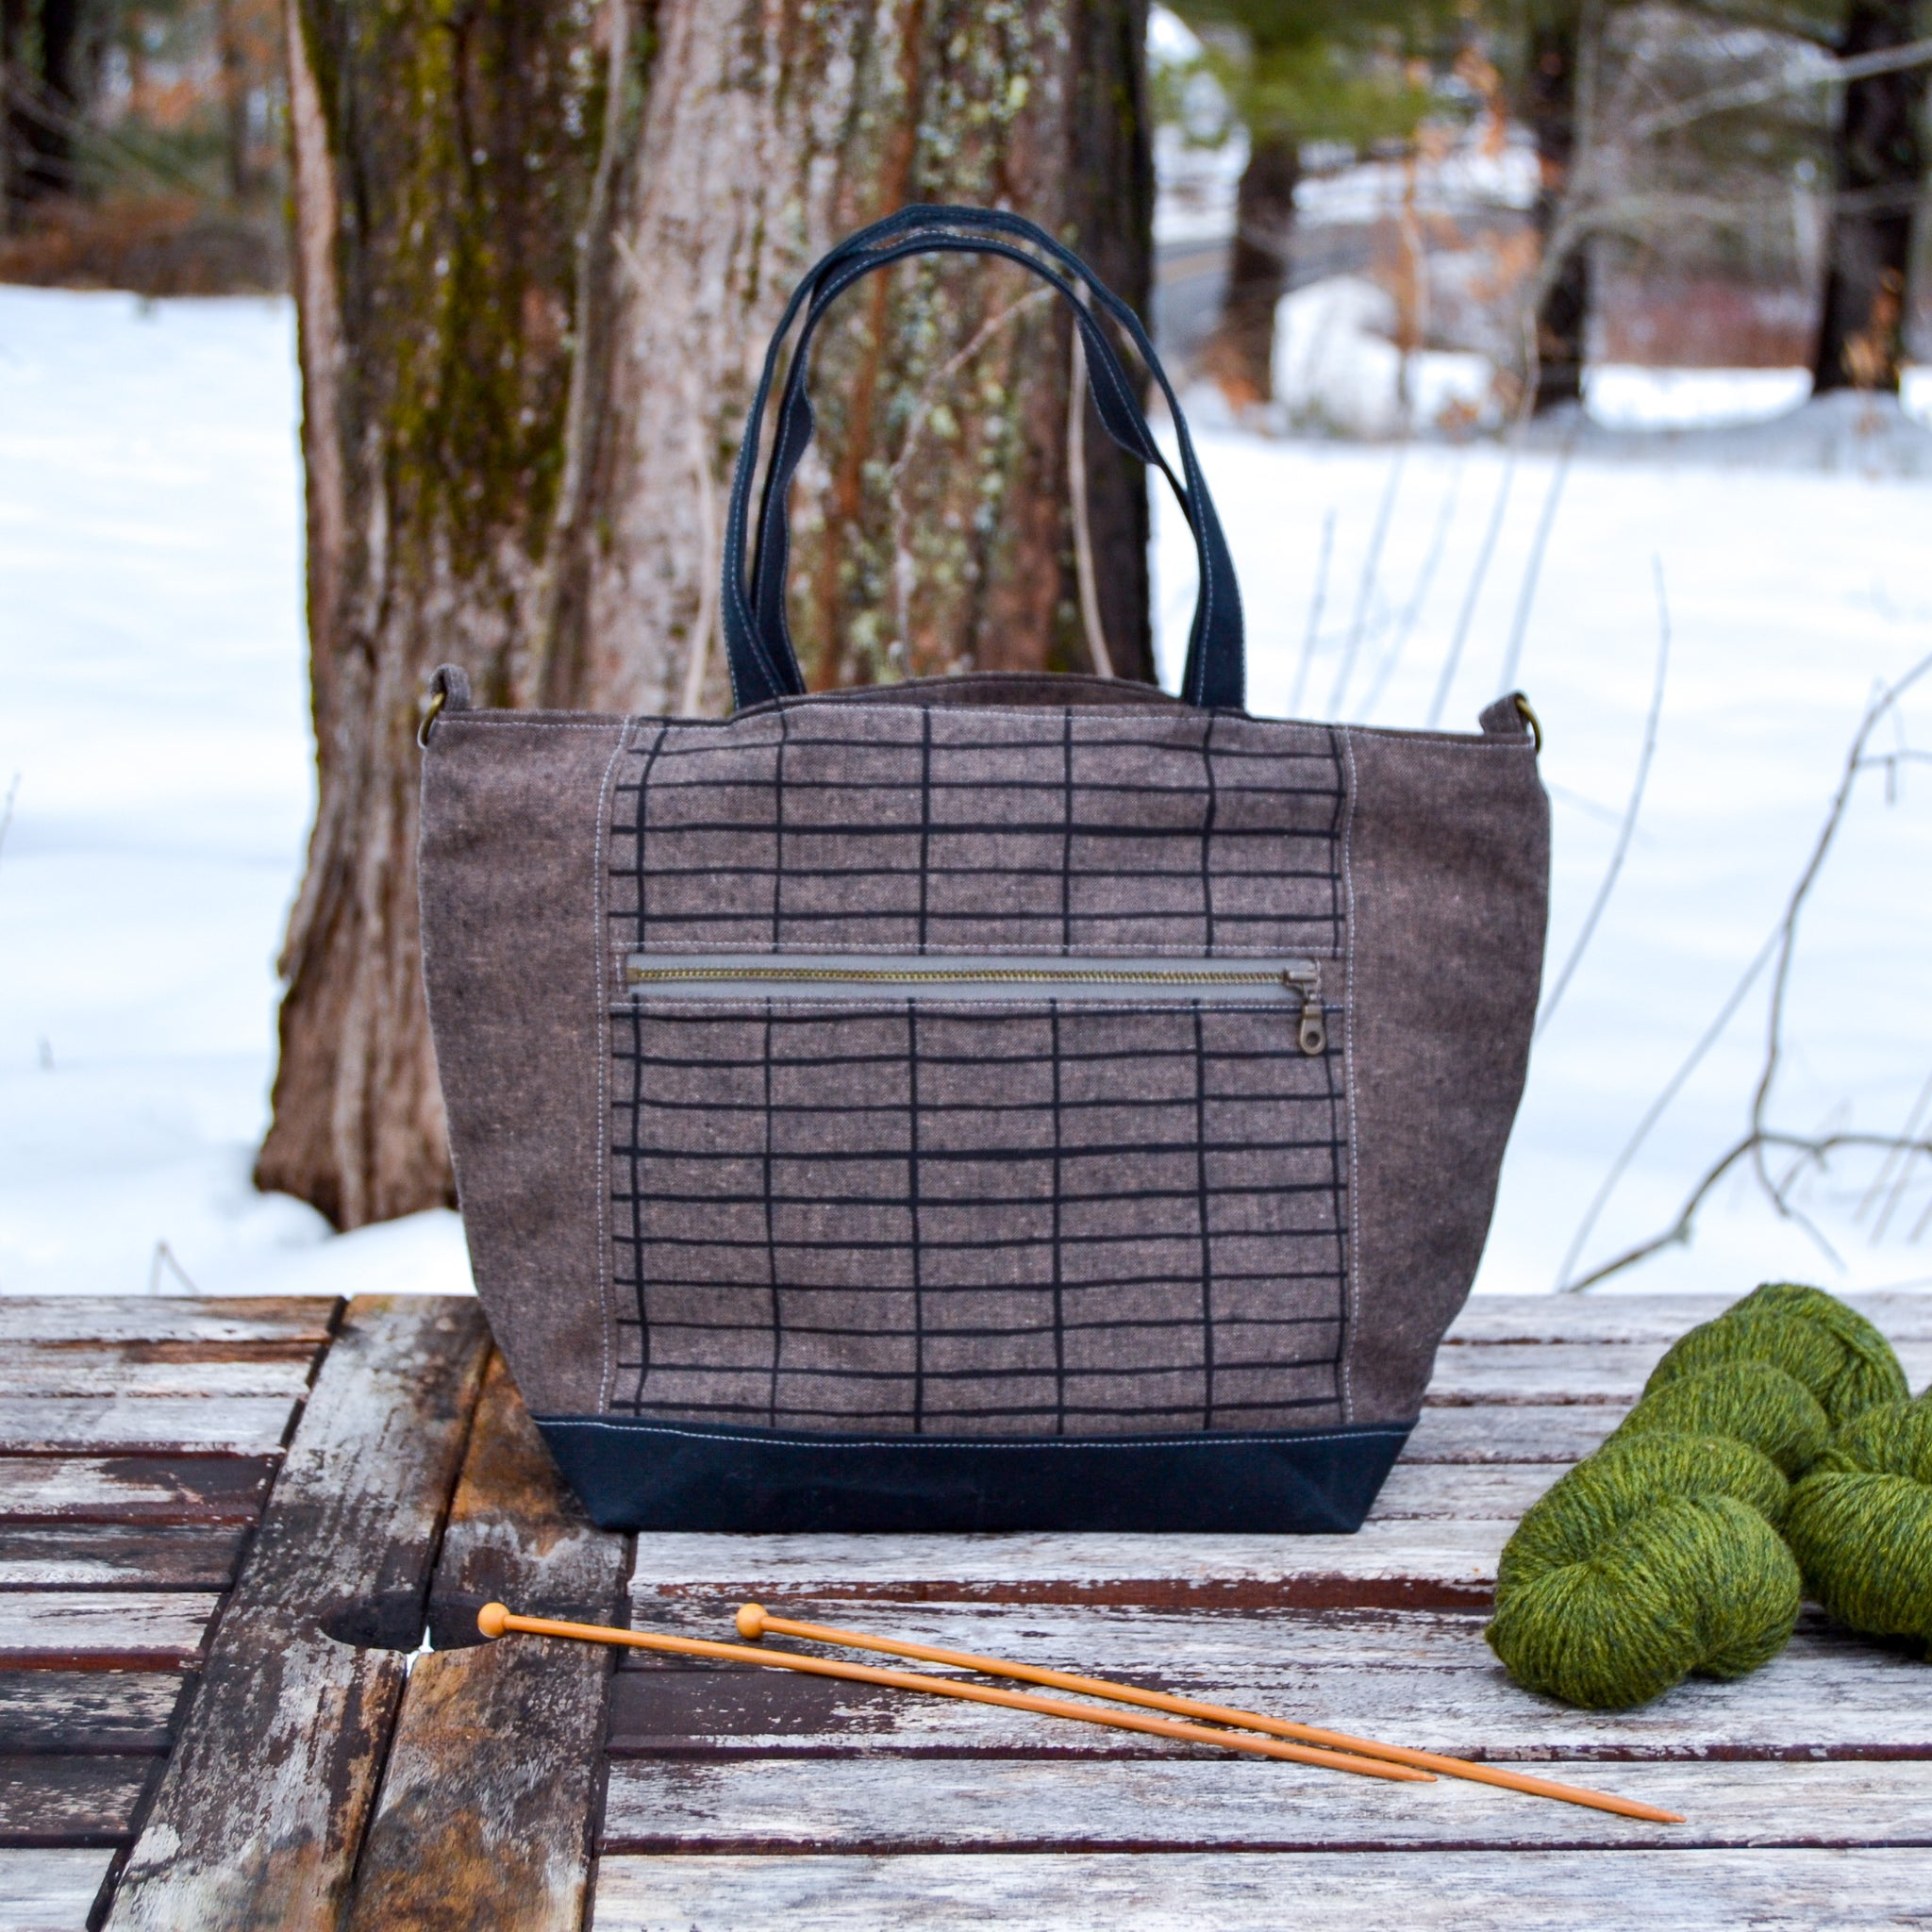 Bark Lines Maple Tote- Linen Zippered Knitting Project Bag Tote Bag (Woodsy and Wild Maple Tote)